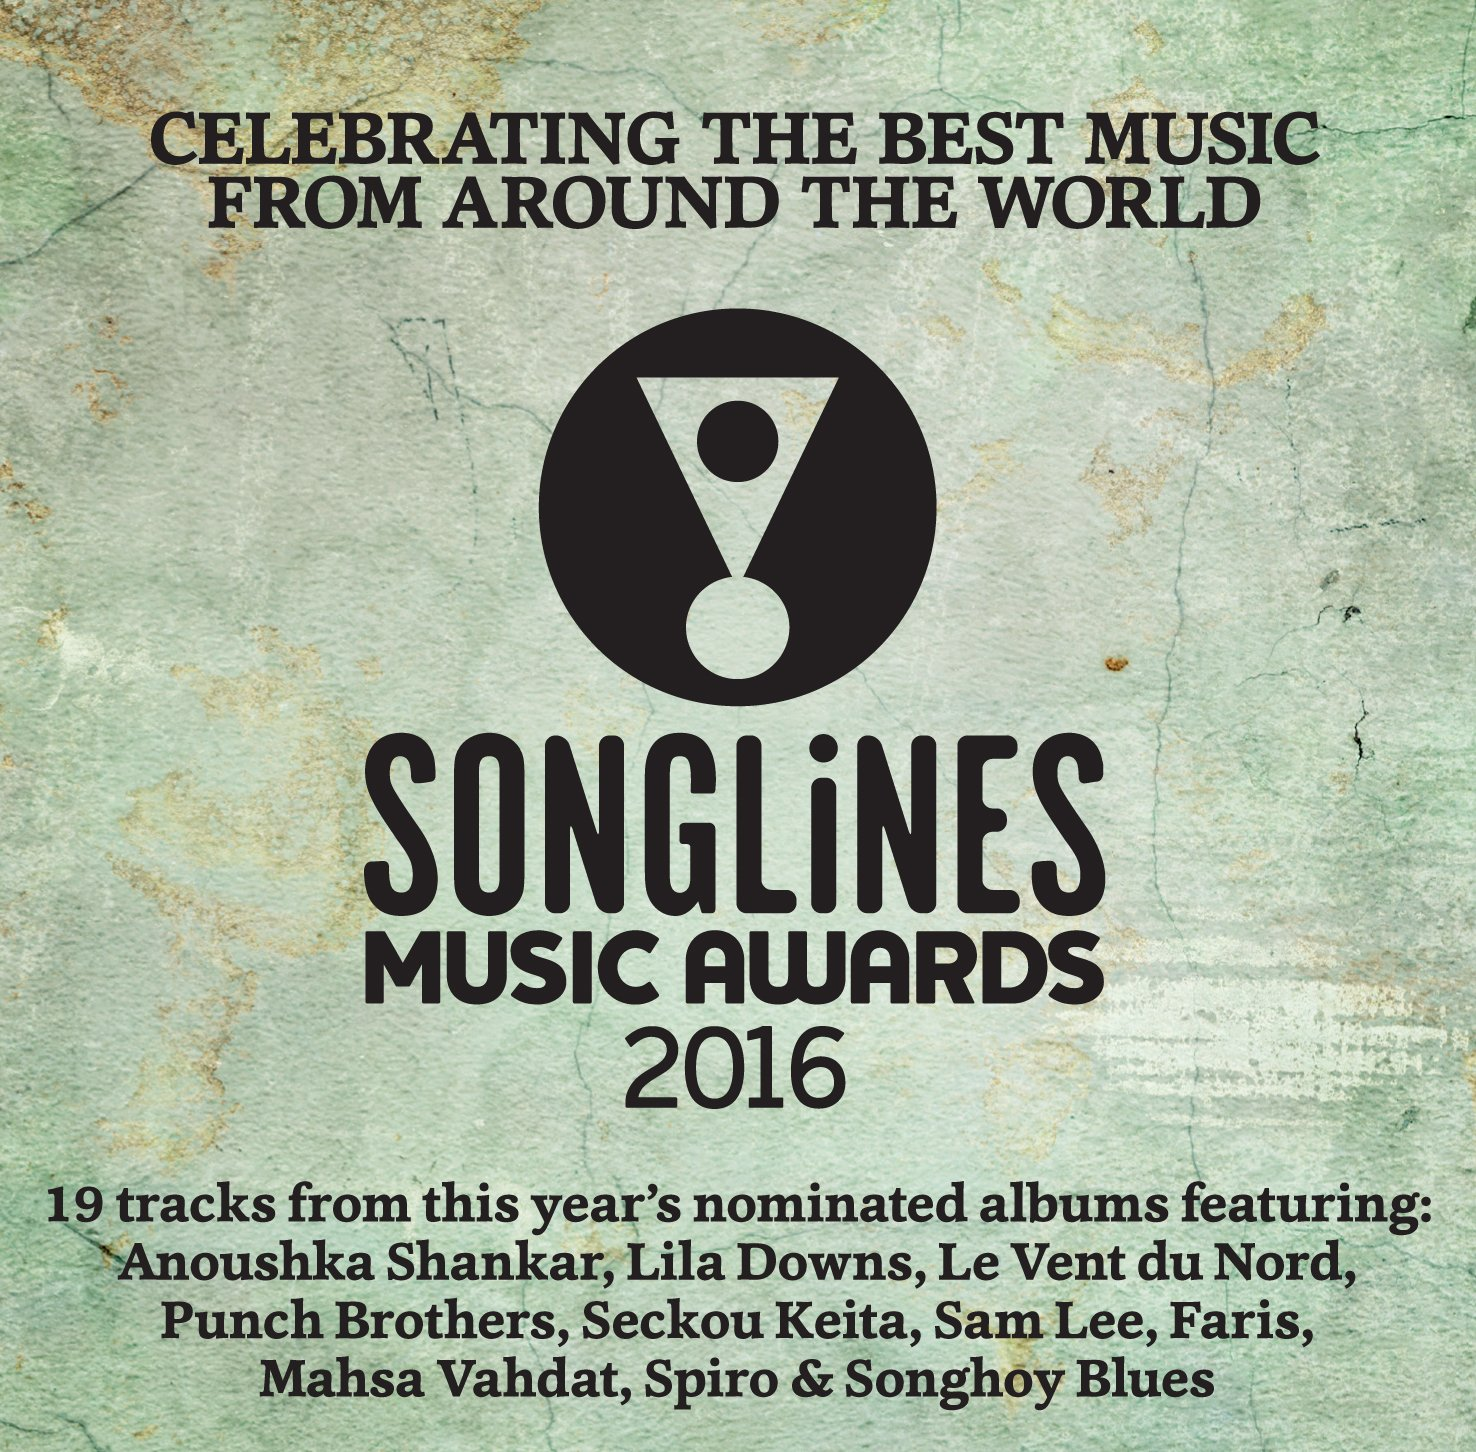 Songlines Music Awards 2016 Nominees Compilation